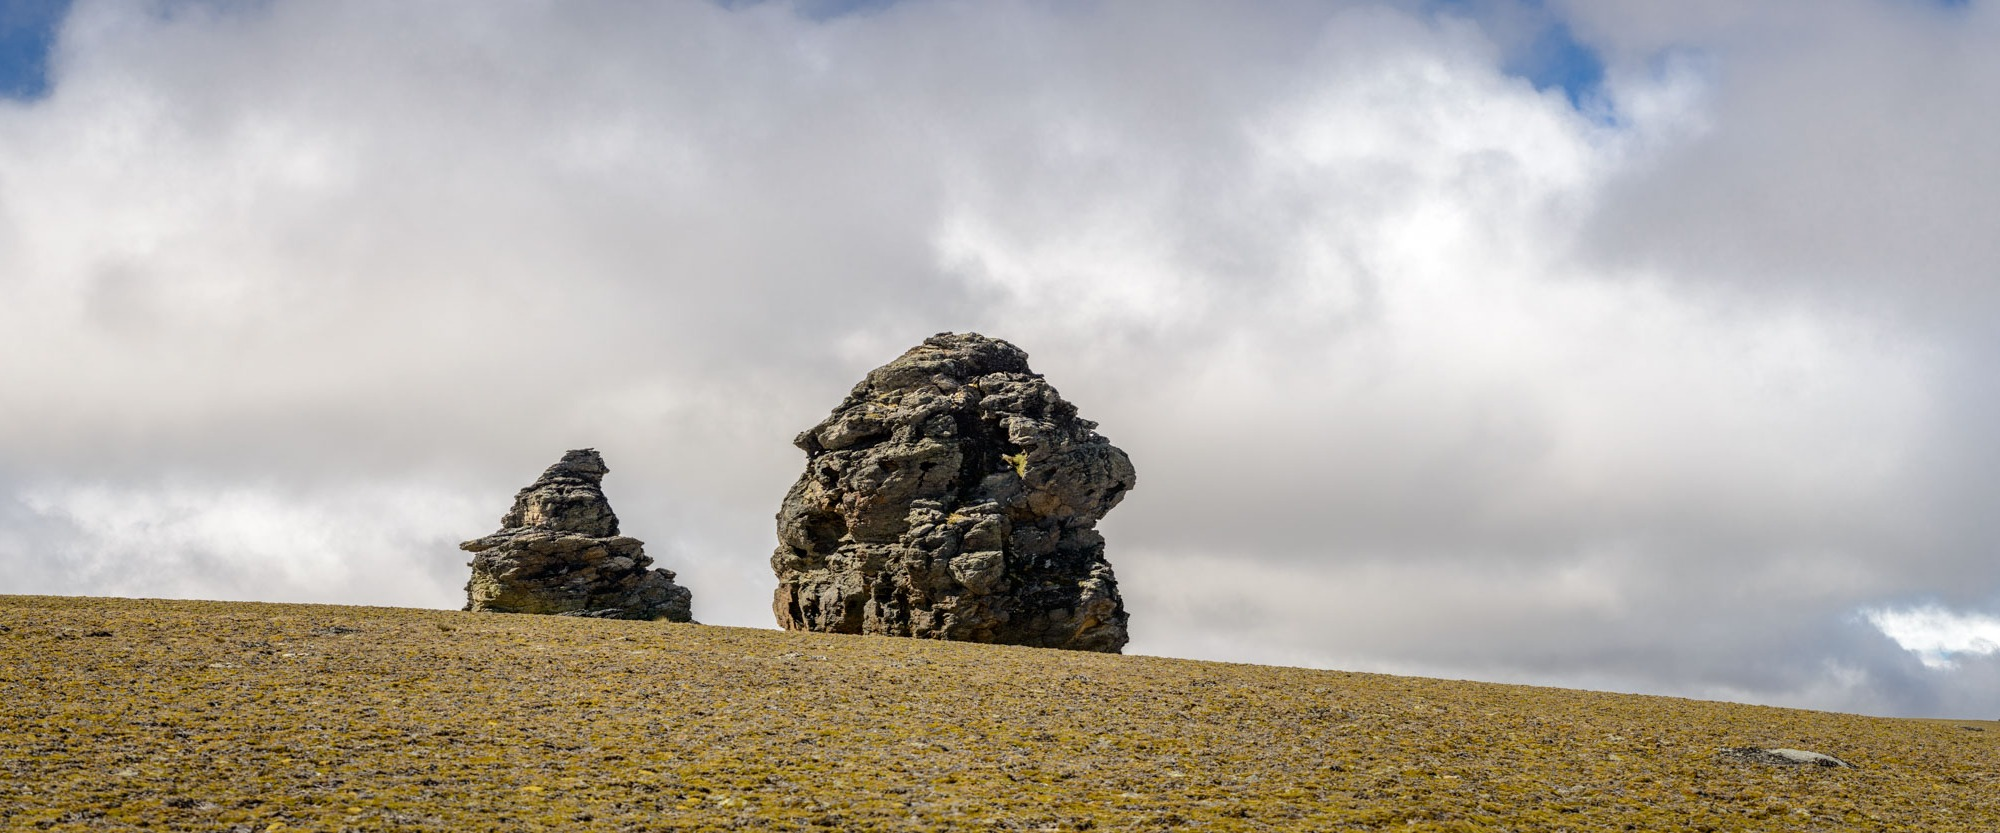 Large rock tors on Central Otago high country plain